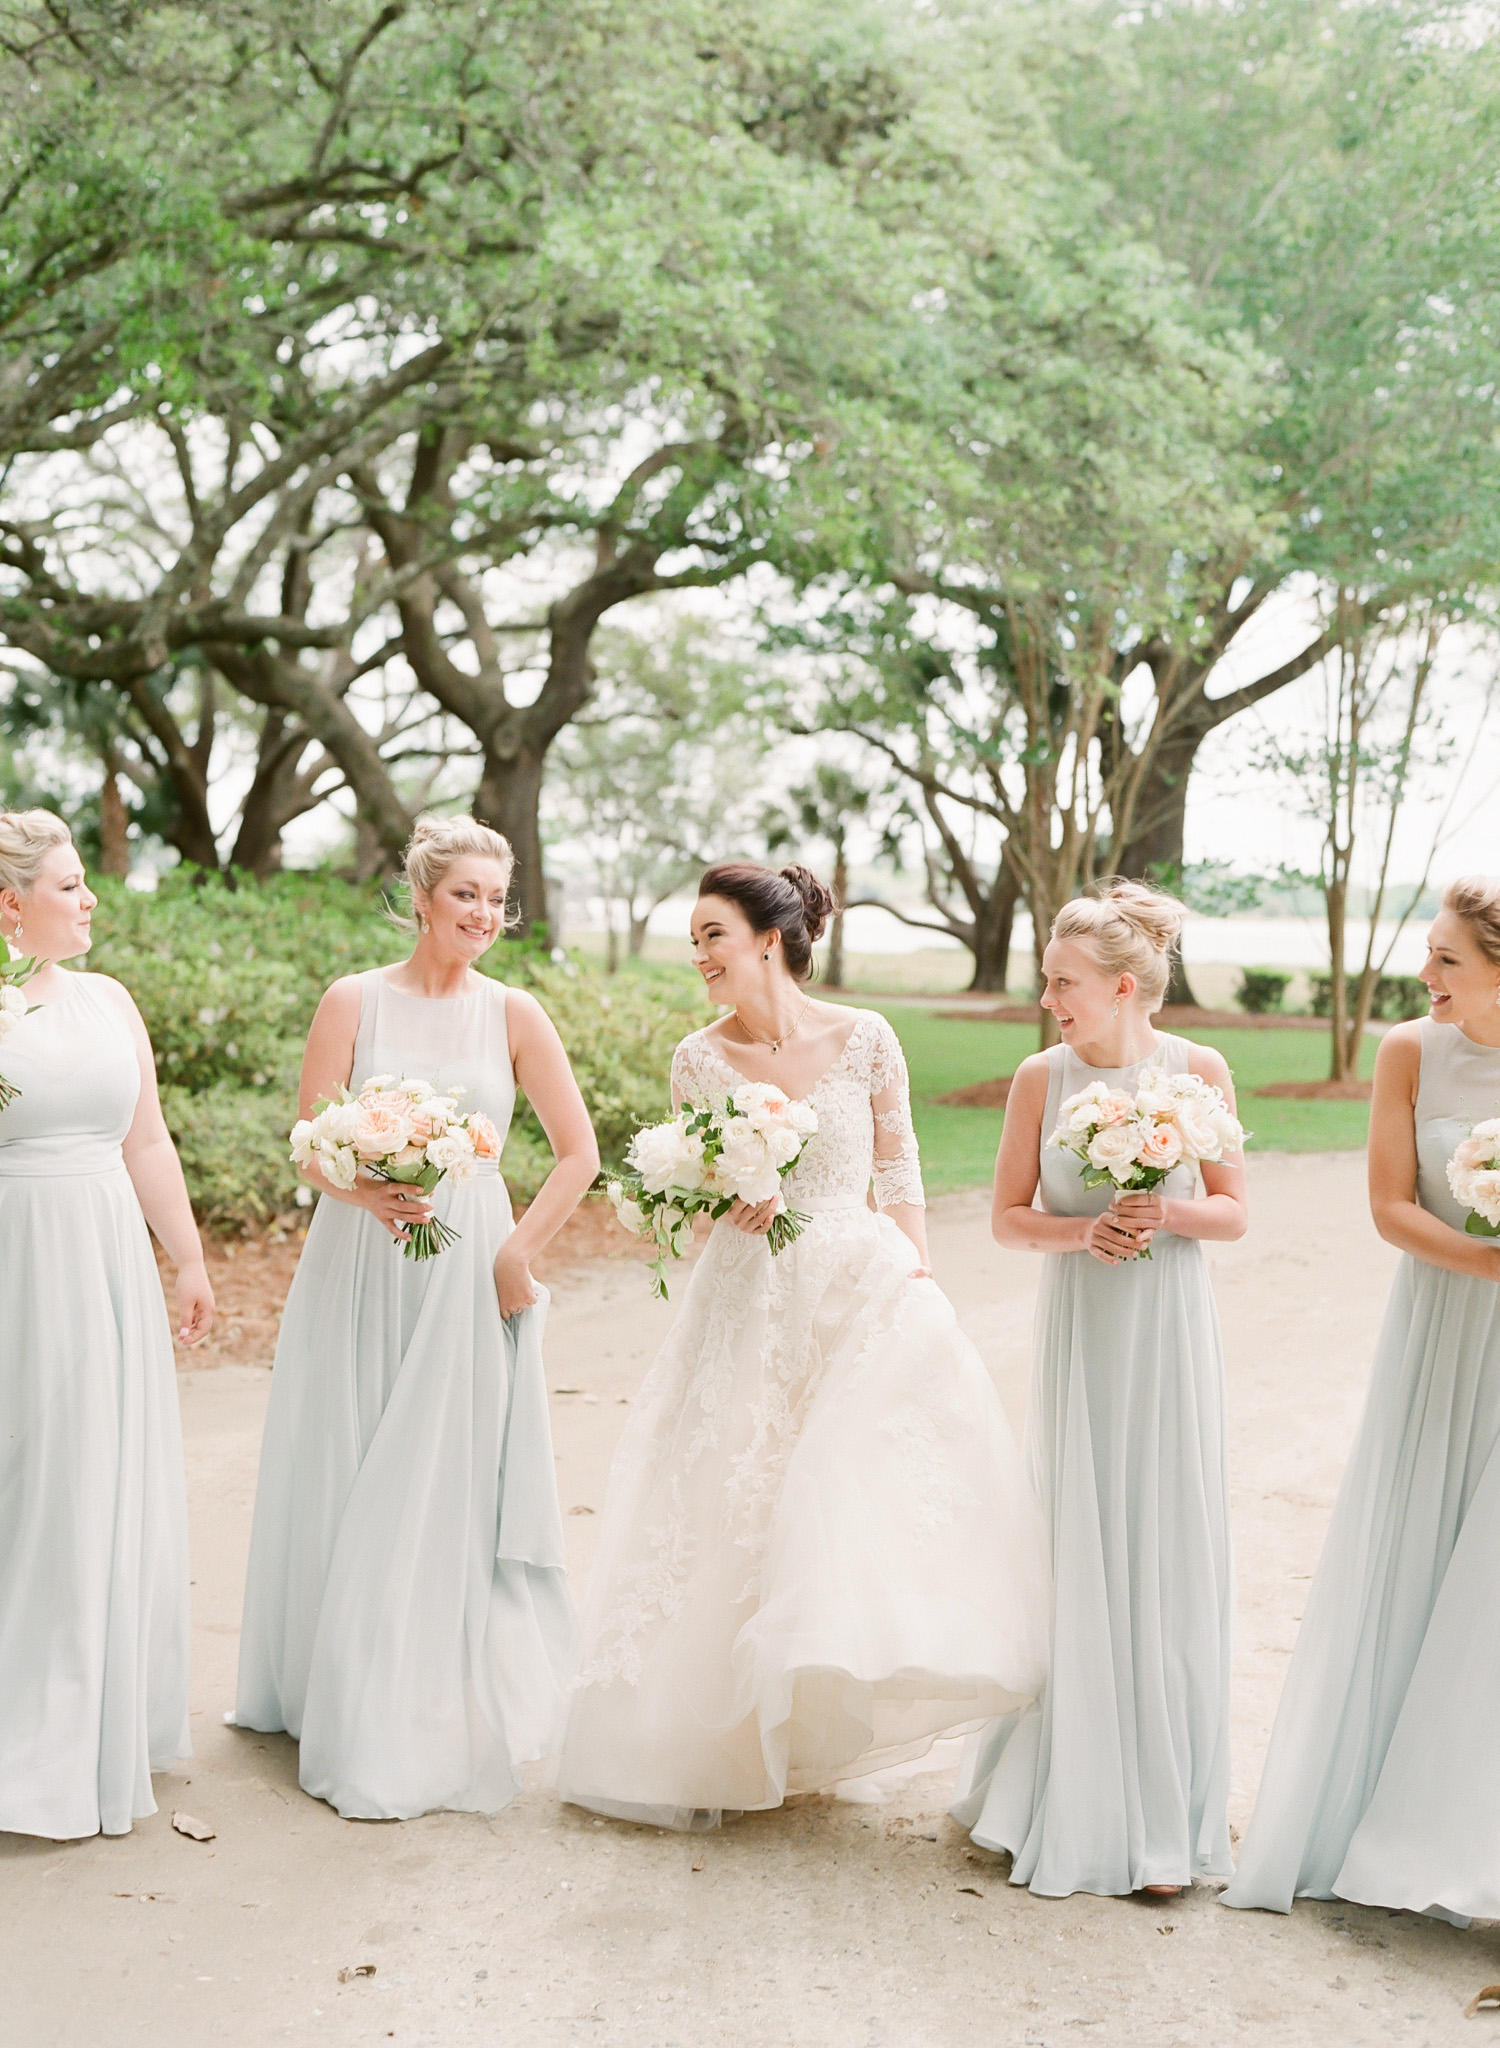 Charleston-Lowndes-Grove-Wedding-PPHG-35.jpg